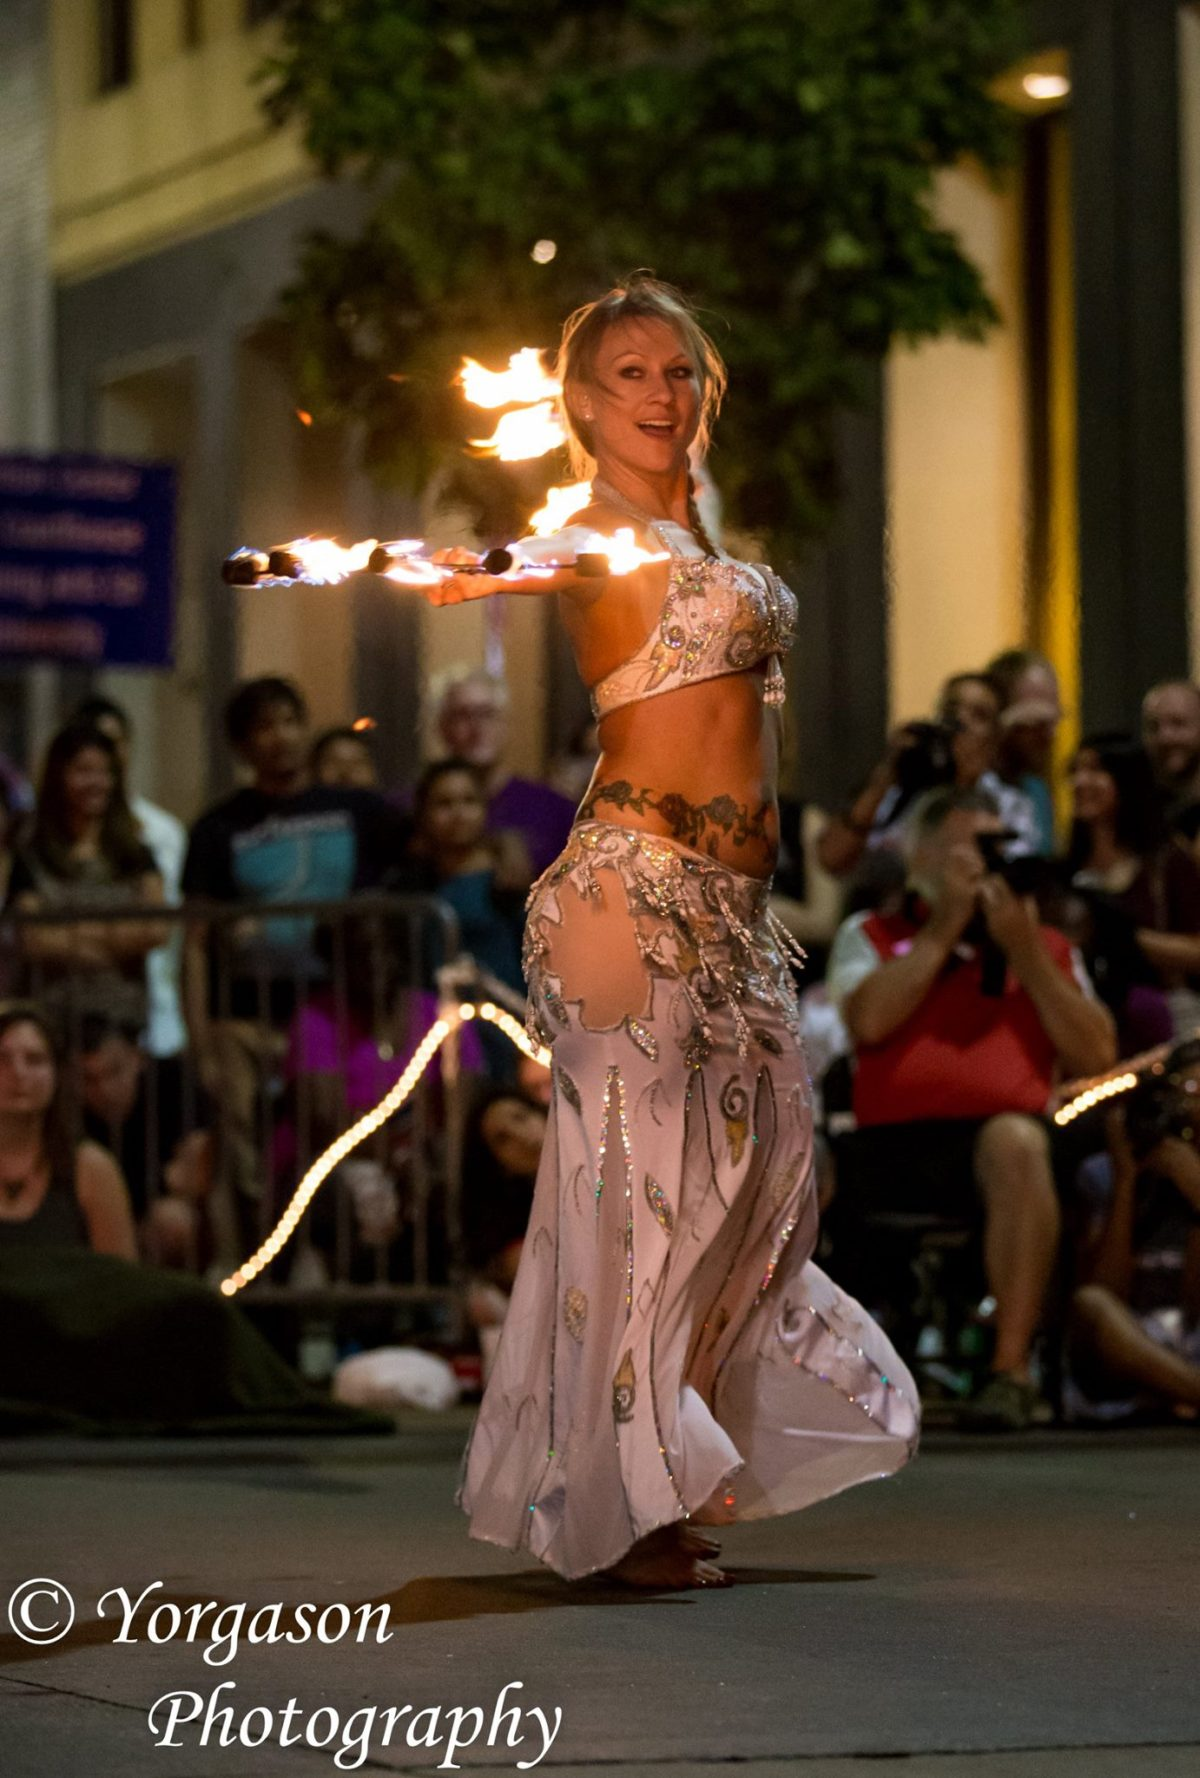 North Carolina Fire Belly Dancer Mundi Broda Flamewater Circus